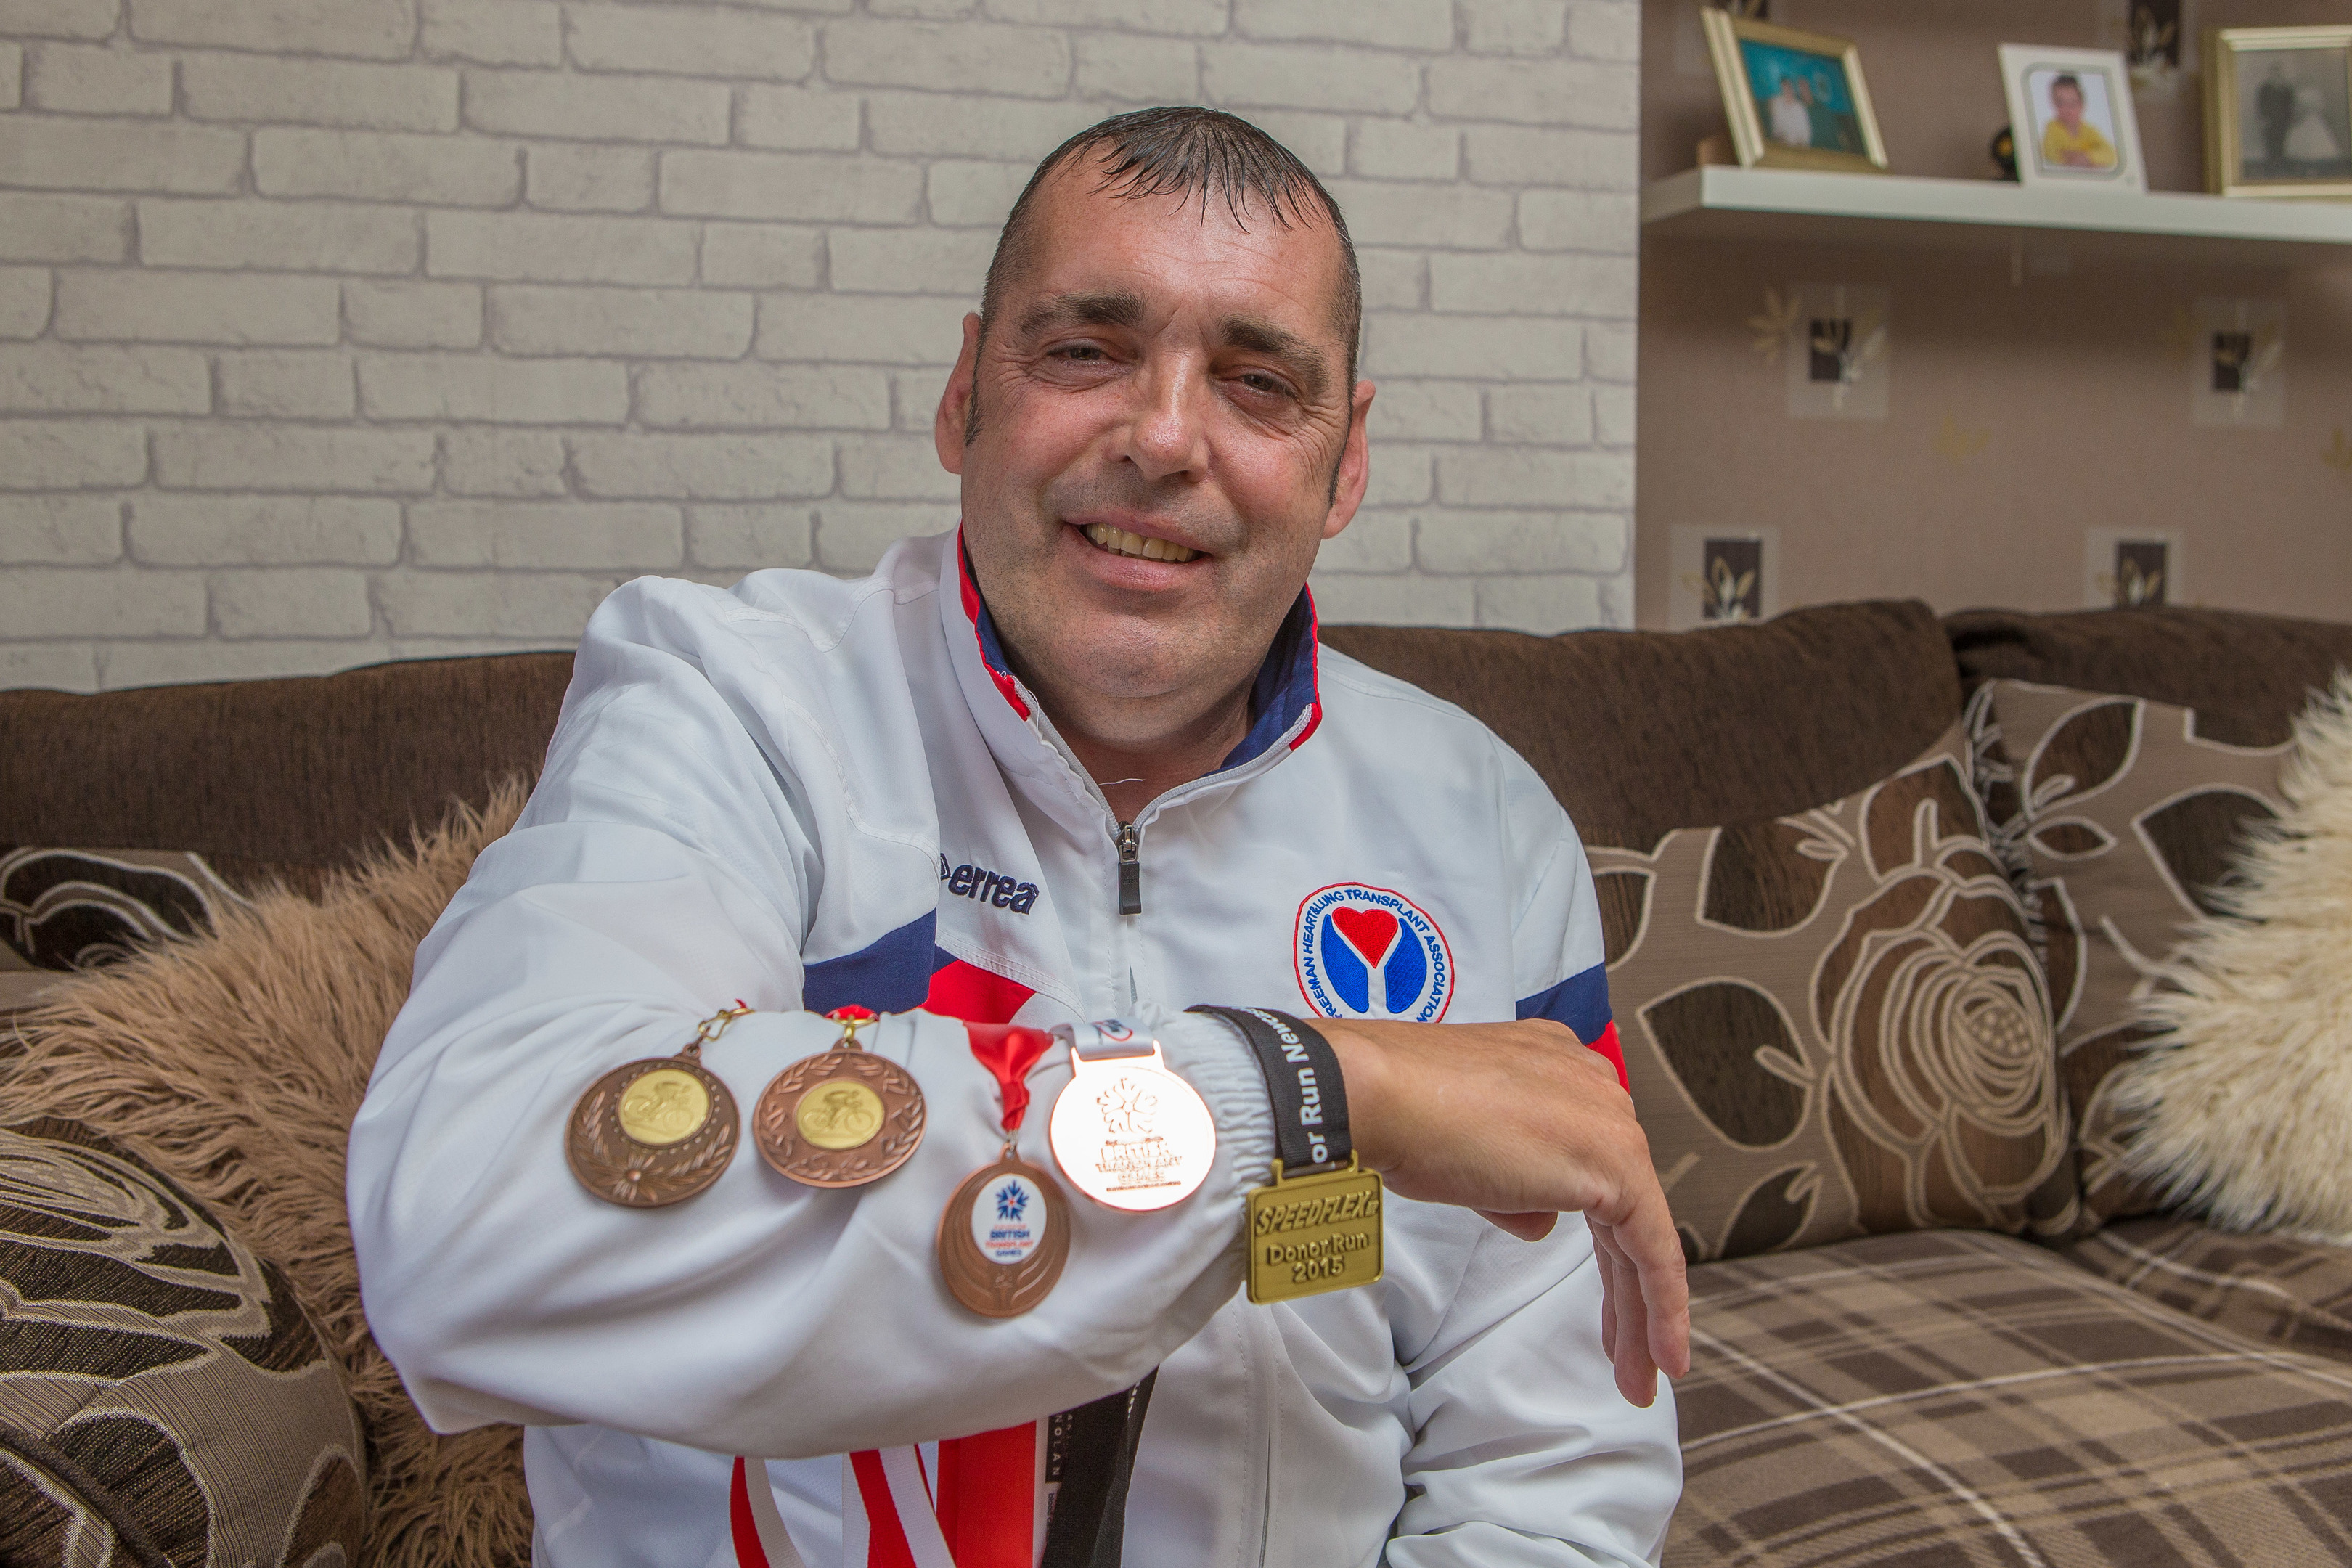 John Coyle has won medals for sporting achievements since his transplant.